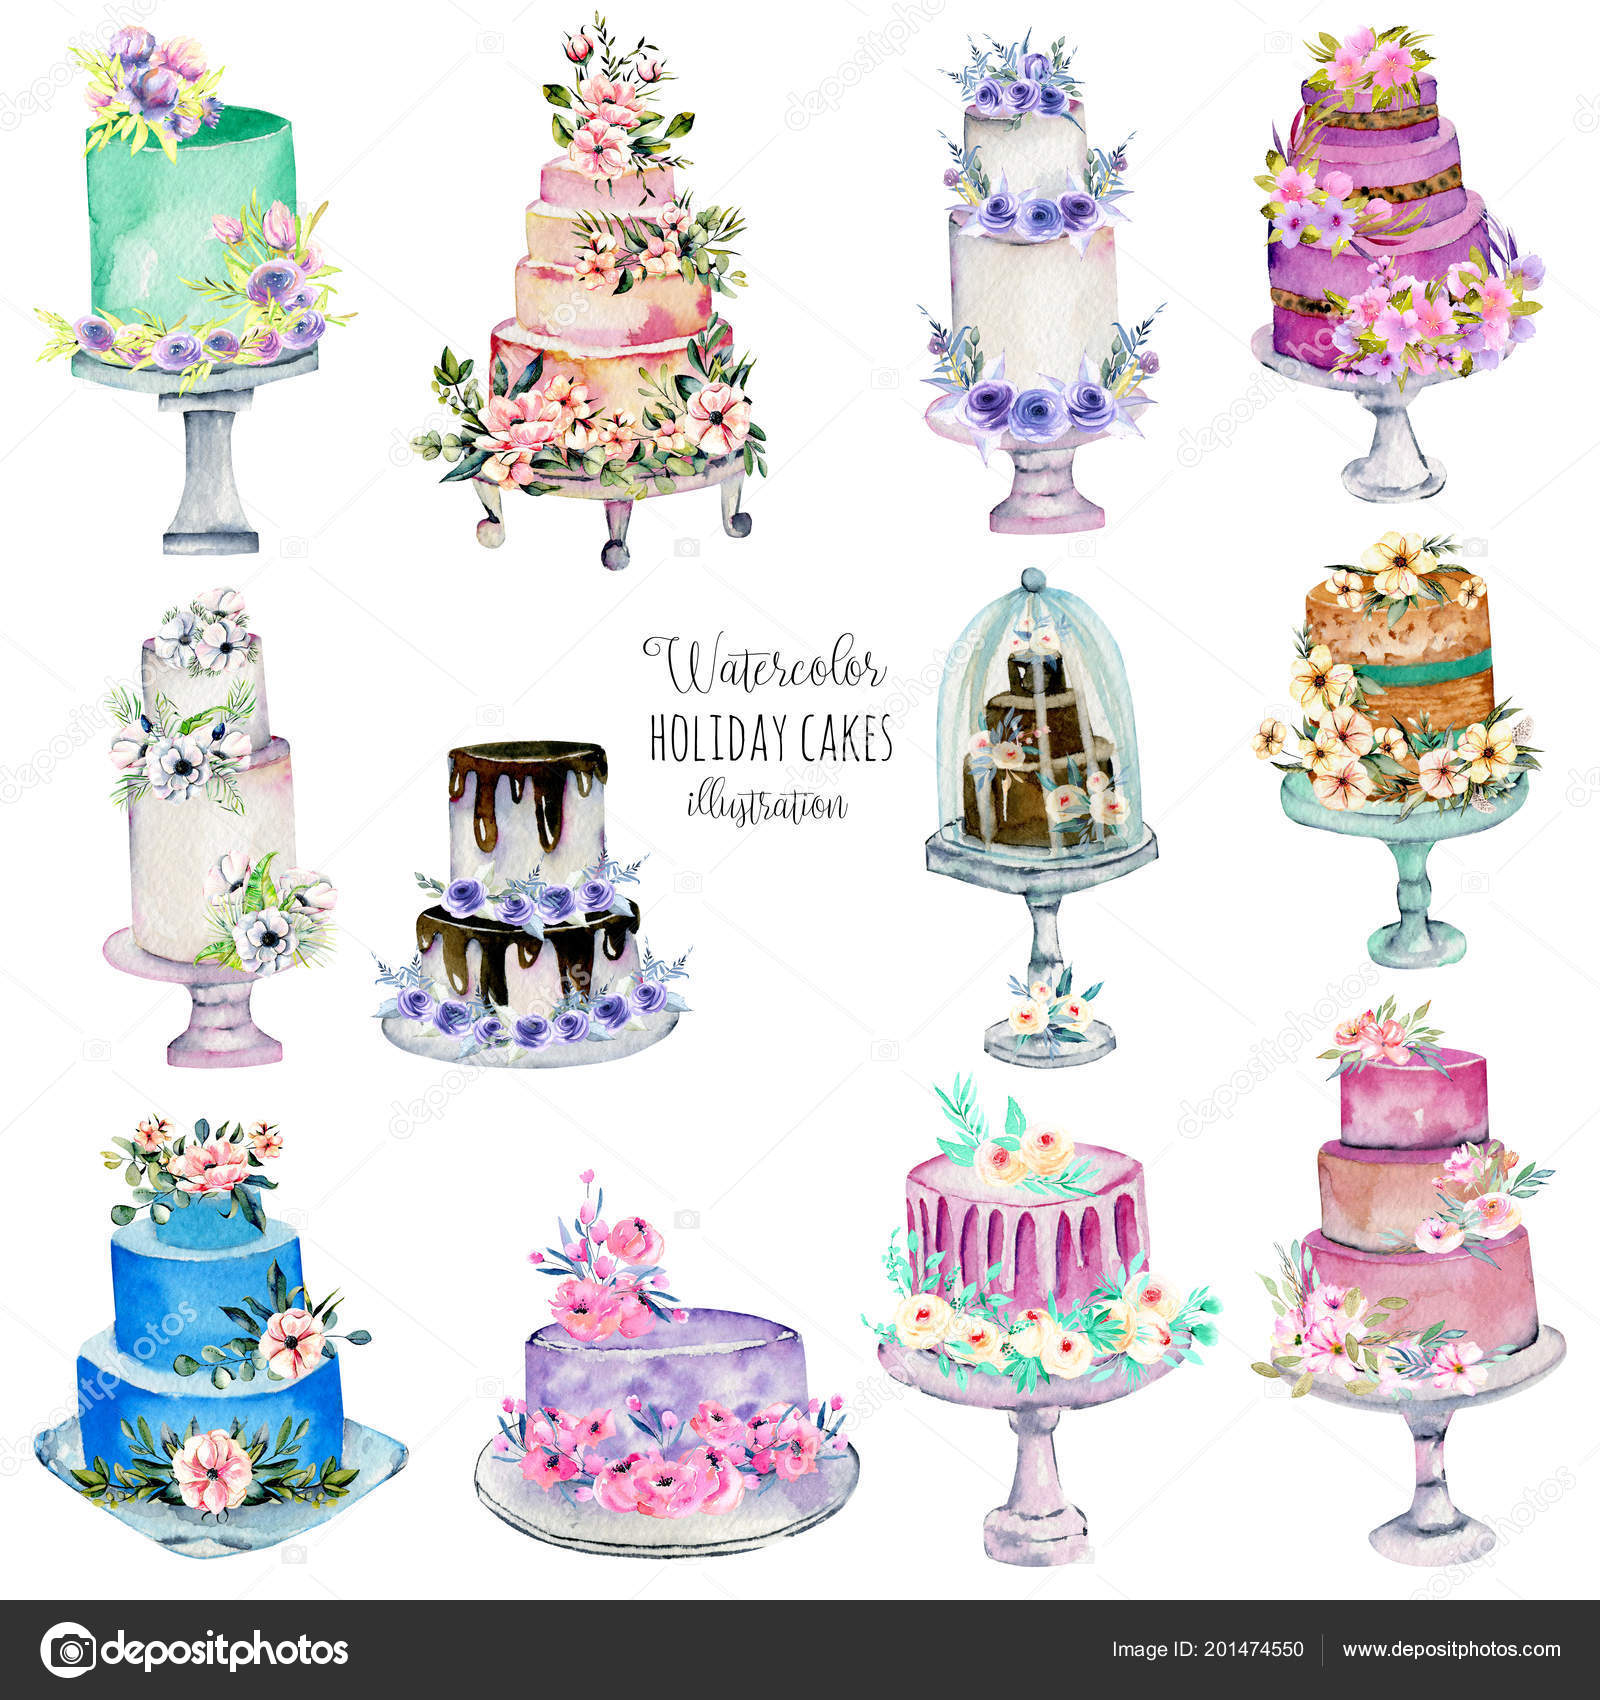 Watercolor Holiday Wedding Cakes Illustration Collection Hand ...